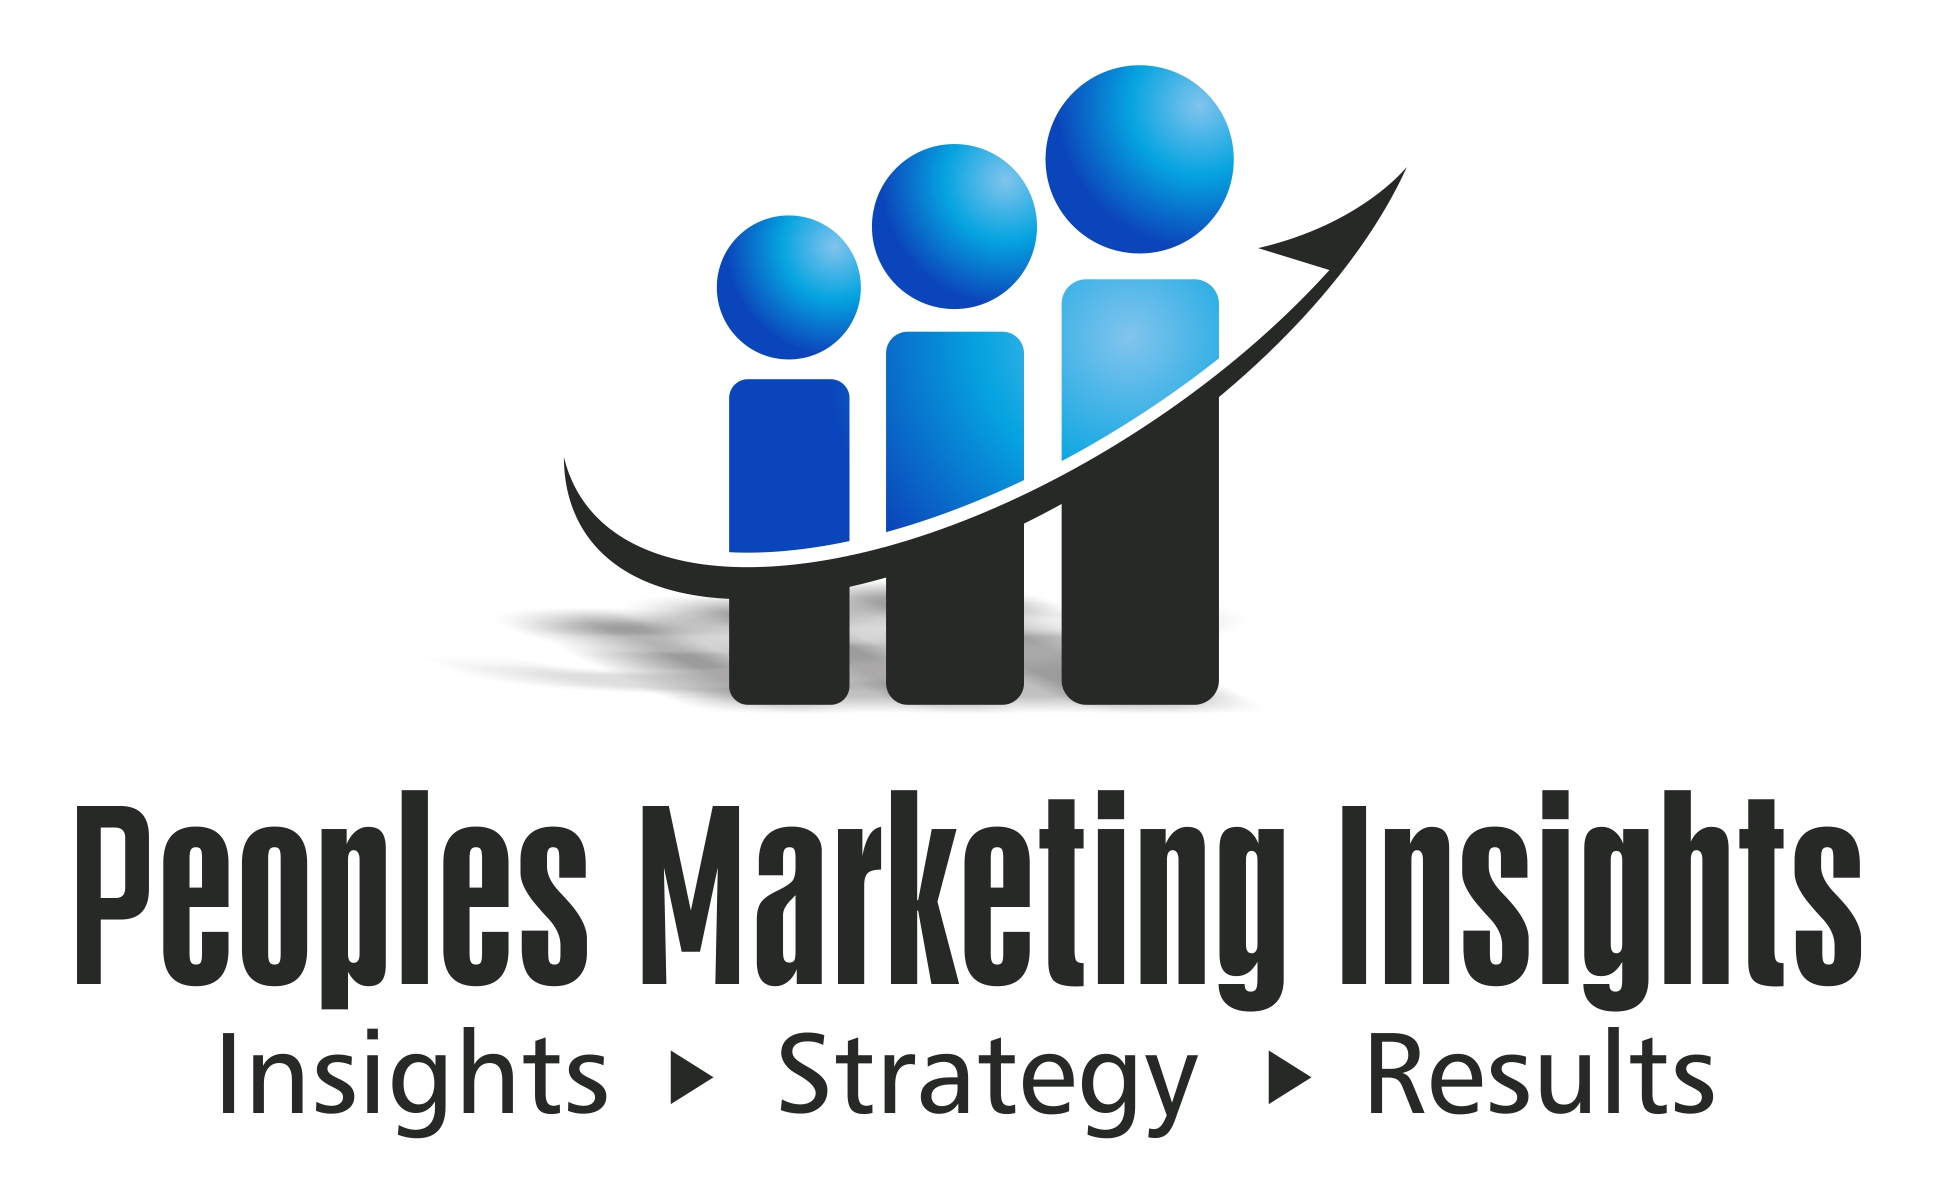 Peoples Marketing Insights